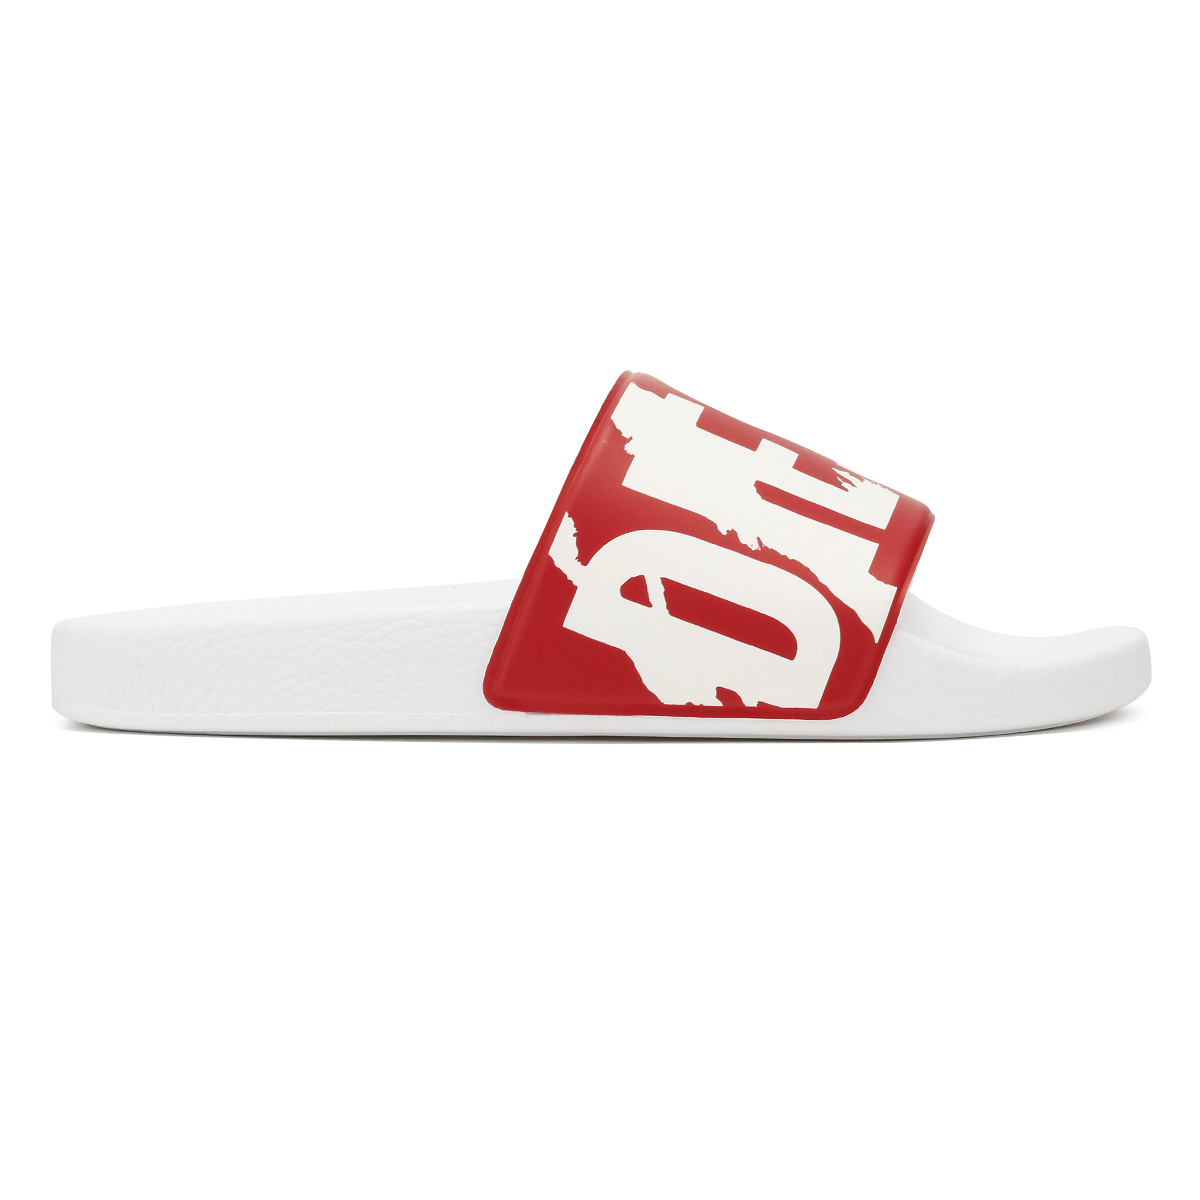 89ff05a05b2fb4 Diesel Hombres SA-Maral Offener Zeh Slip on Hausschuhe Weiss Groesse ...